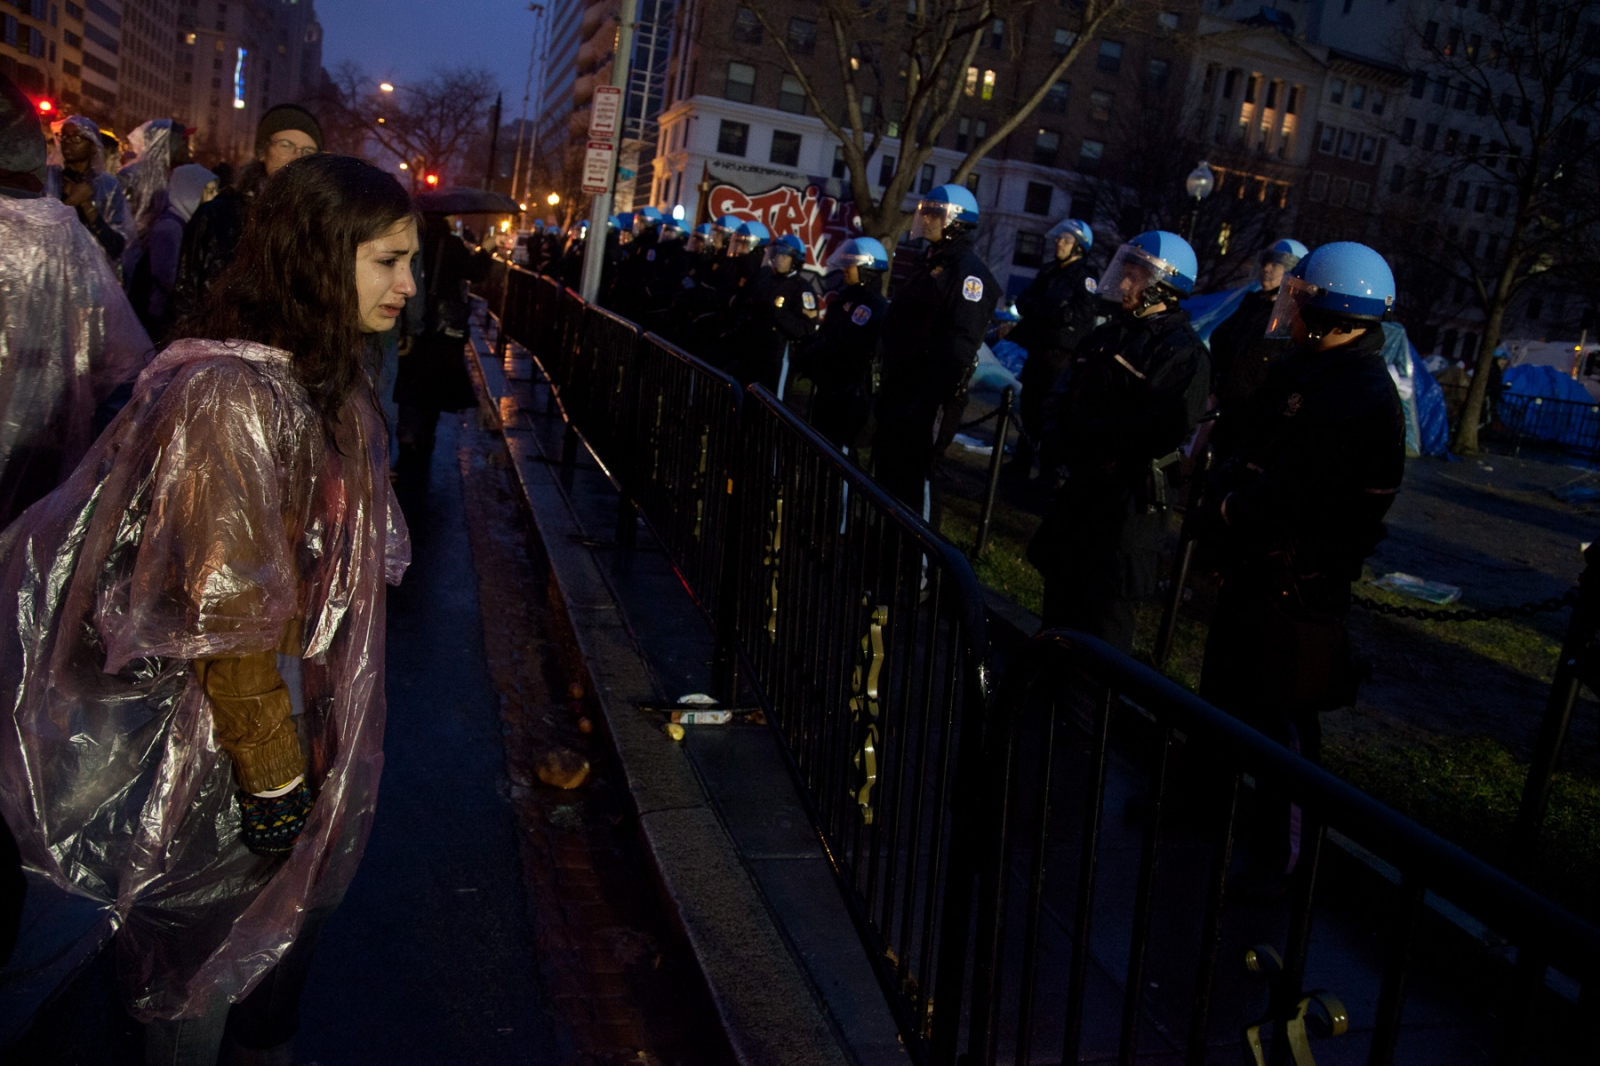 An angry protestor looks on in disbelief as it becomes apparent that Occupy DC has lost McPherson park.